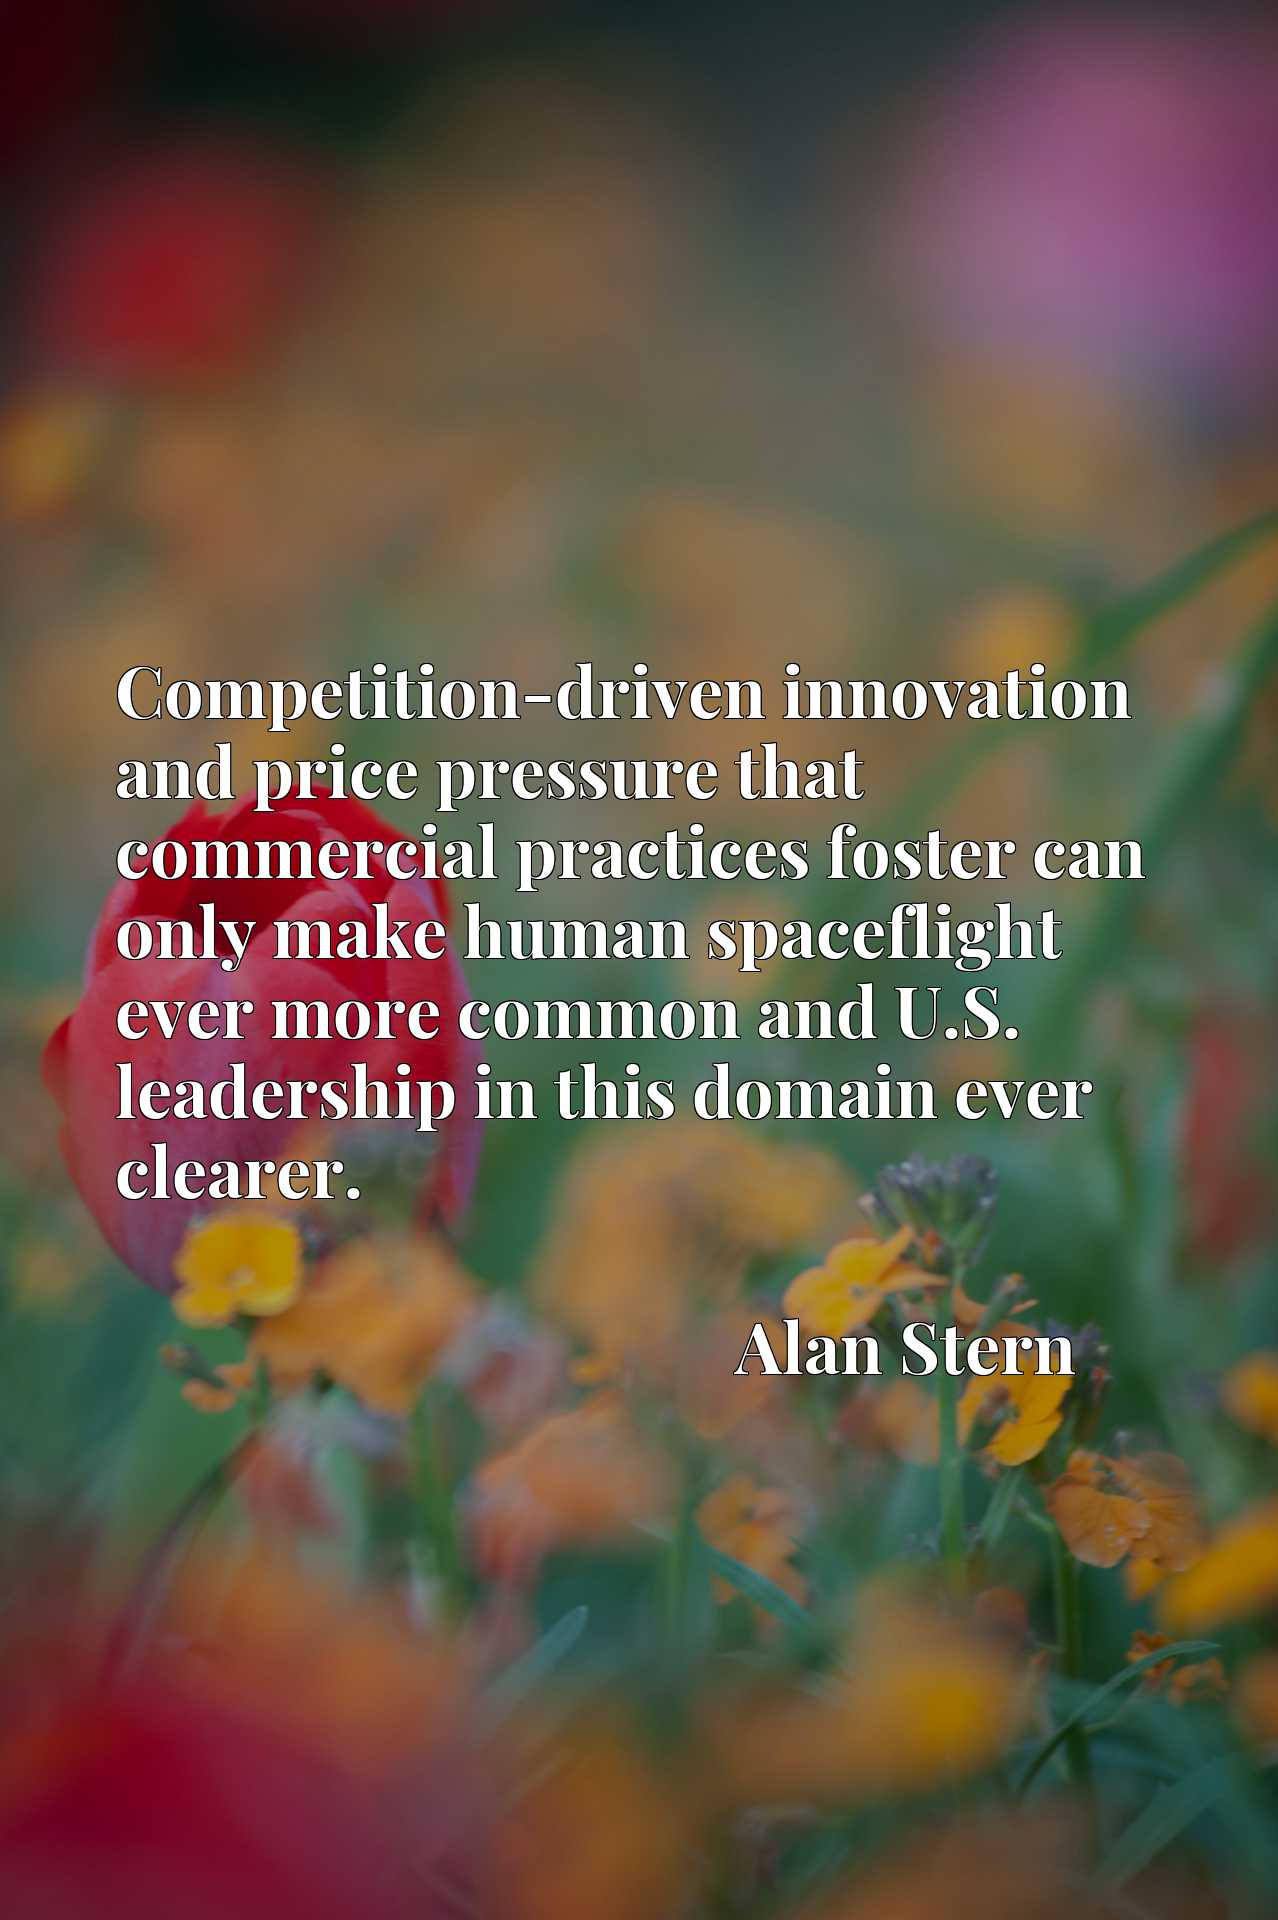 Quote Picture :Competition-driven innovation and price pressure that commercial practices foster can only make human spaceflight ever more common and U.S. leadership in this domain ever clearer.